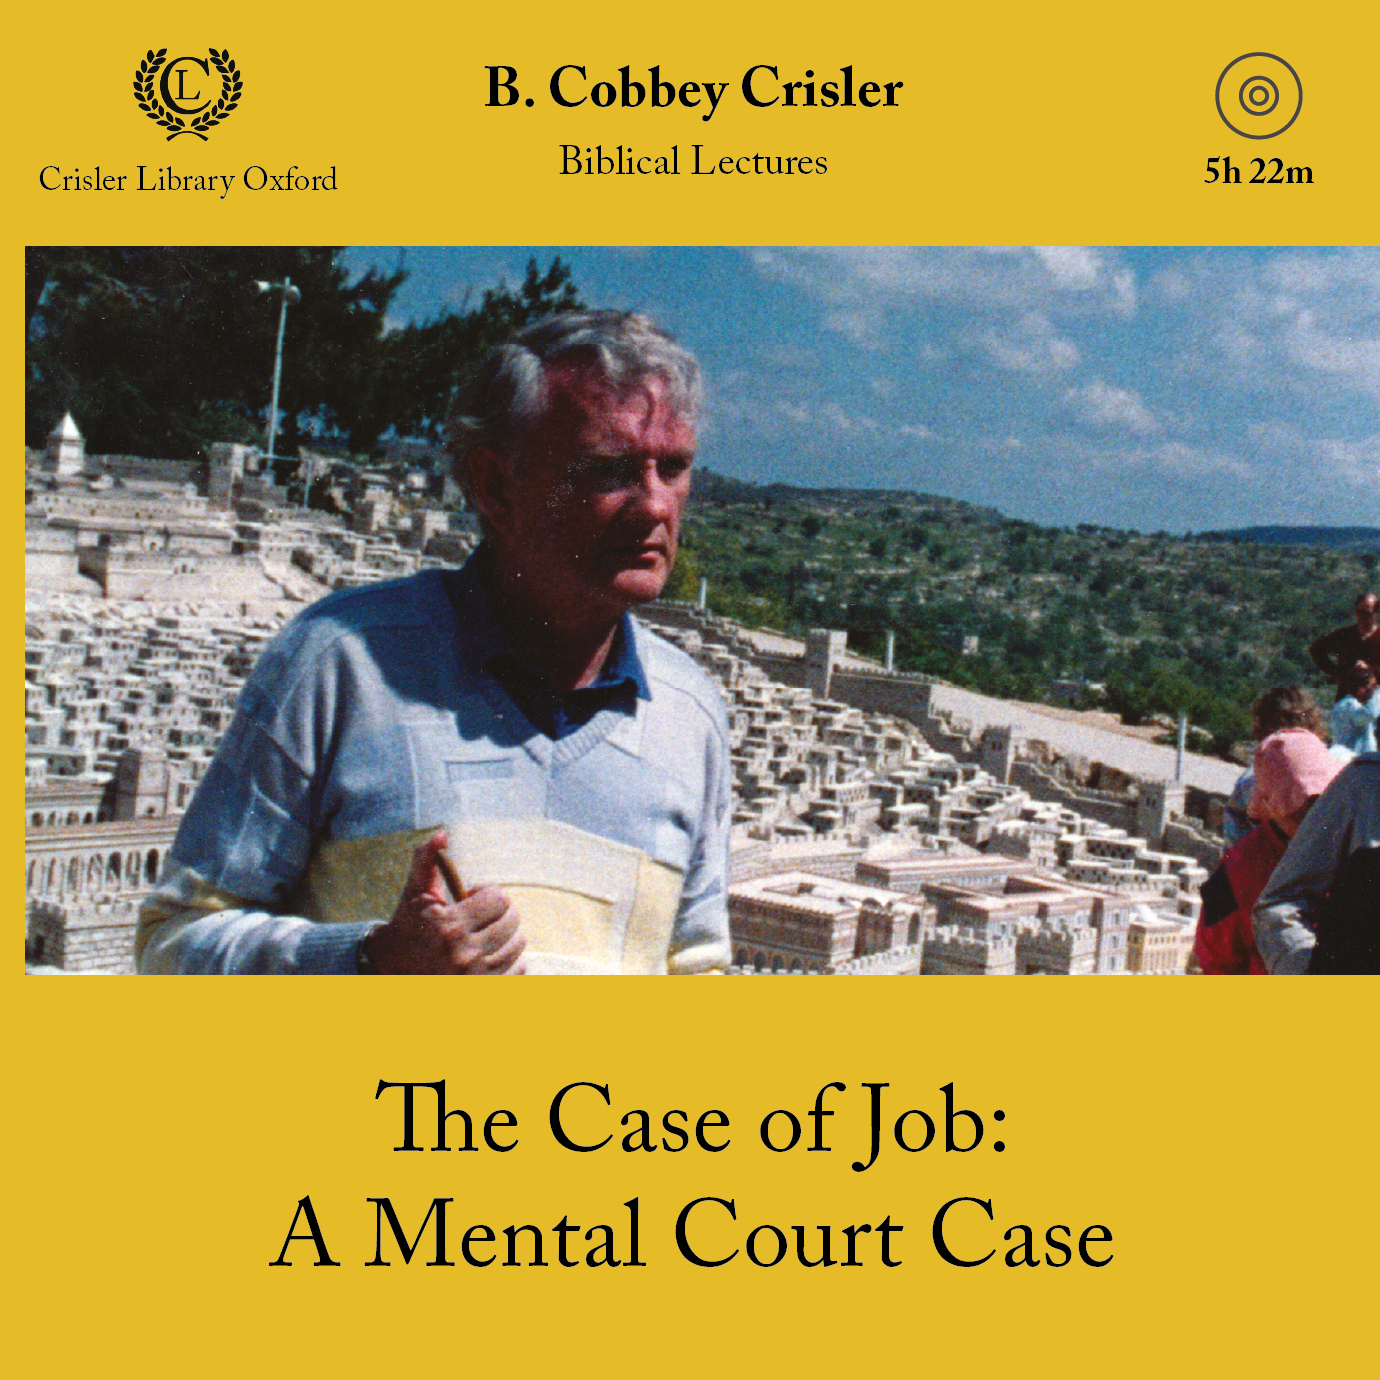 The Case of Job: A Mental Court Case